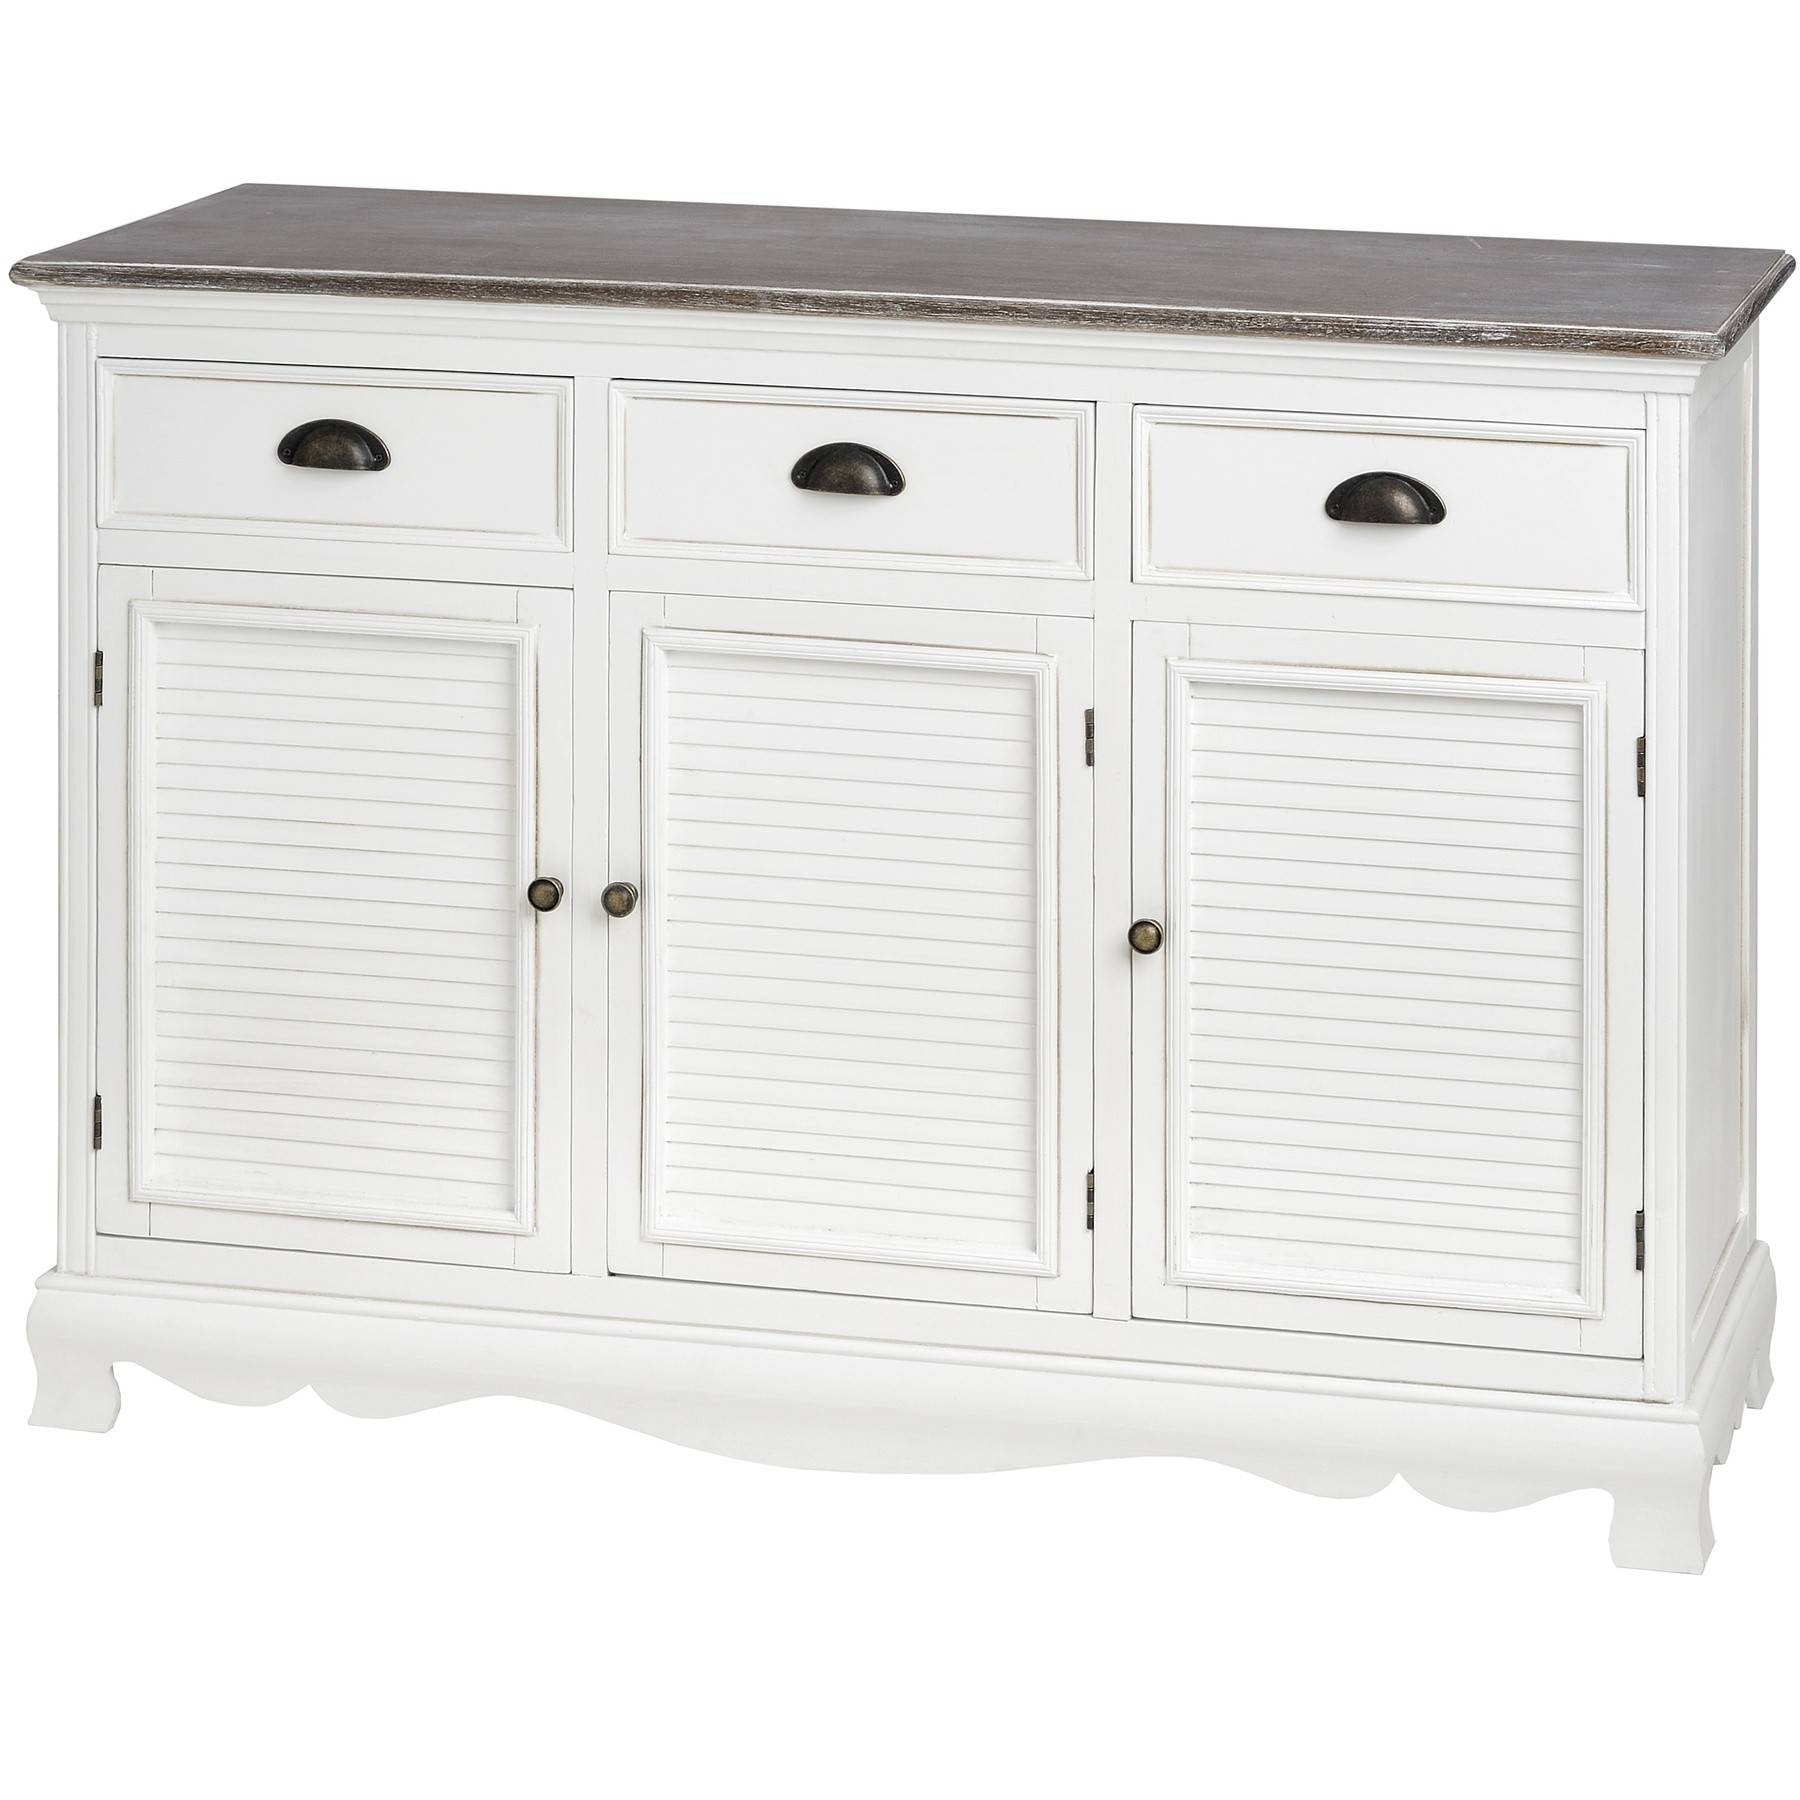 Louisiana Large White Sideboard With 3 Doors| Bedroom Furniture Direct Inside White Sideboard Cabinet (View 10 of 20)